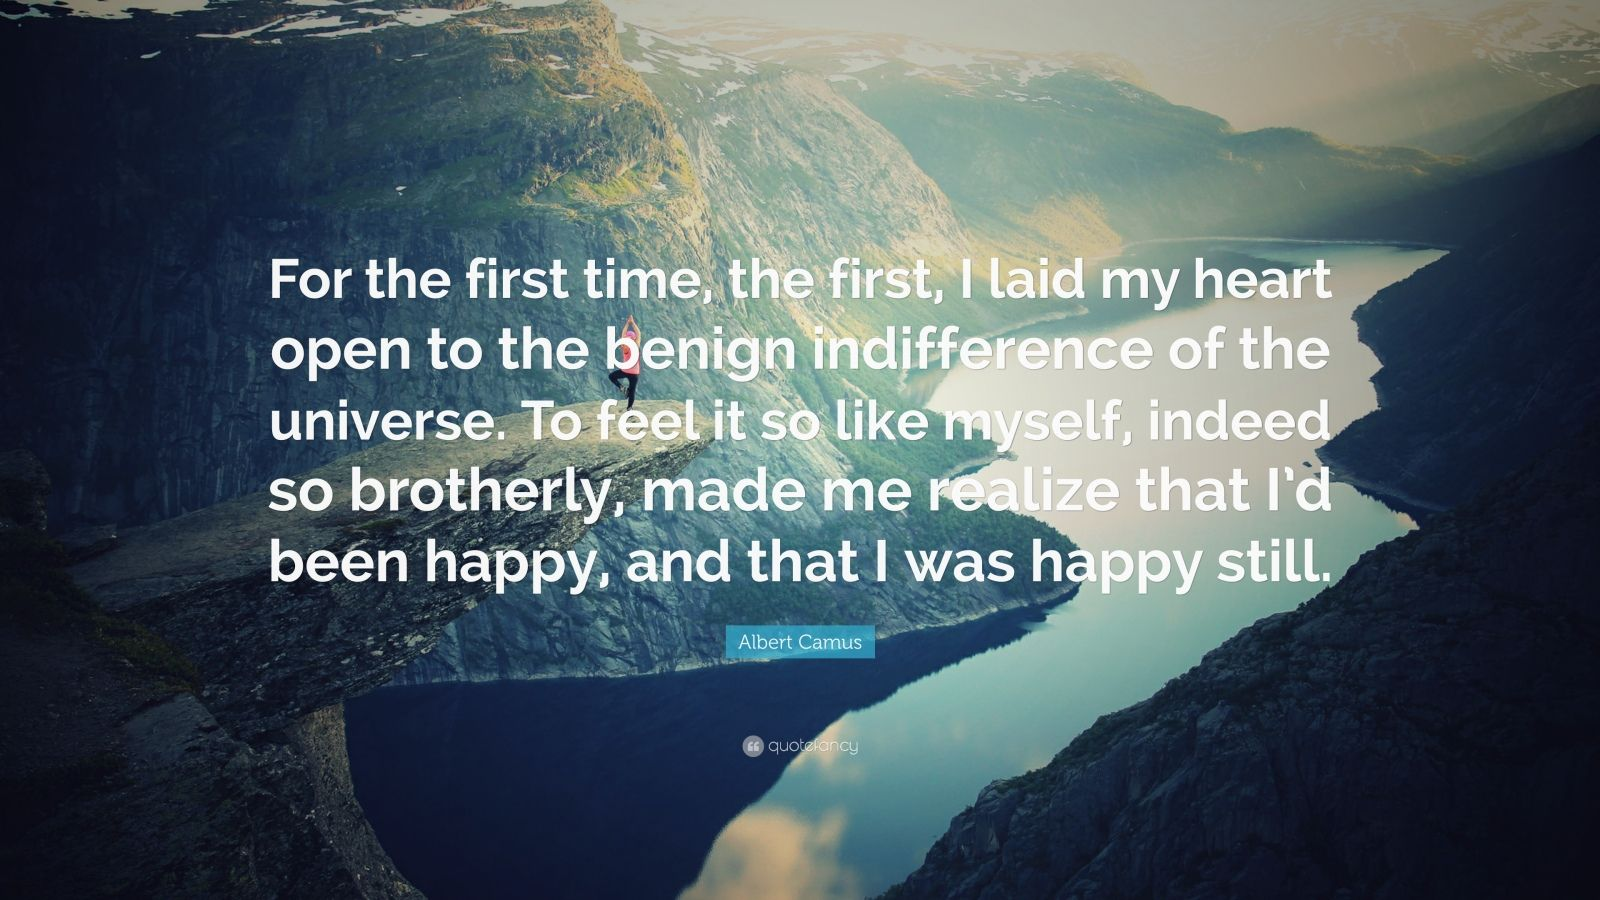 """Albert Camus Quote: """"For the first time, the first, I laid my heart open to the benign indifference of the universe. To feel it so like myself, indeed so brotherly, made me realize that I'd been happy, and that I was happy still."""""""